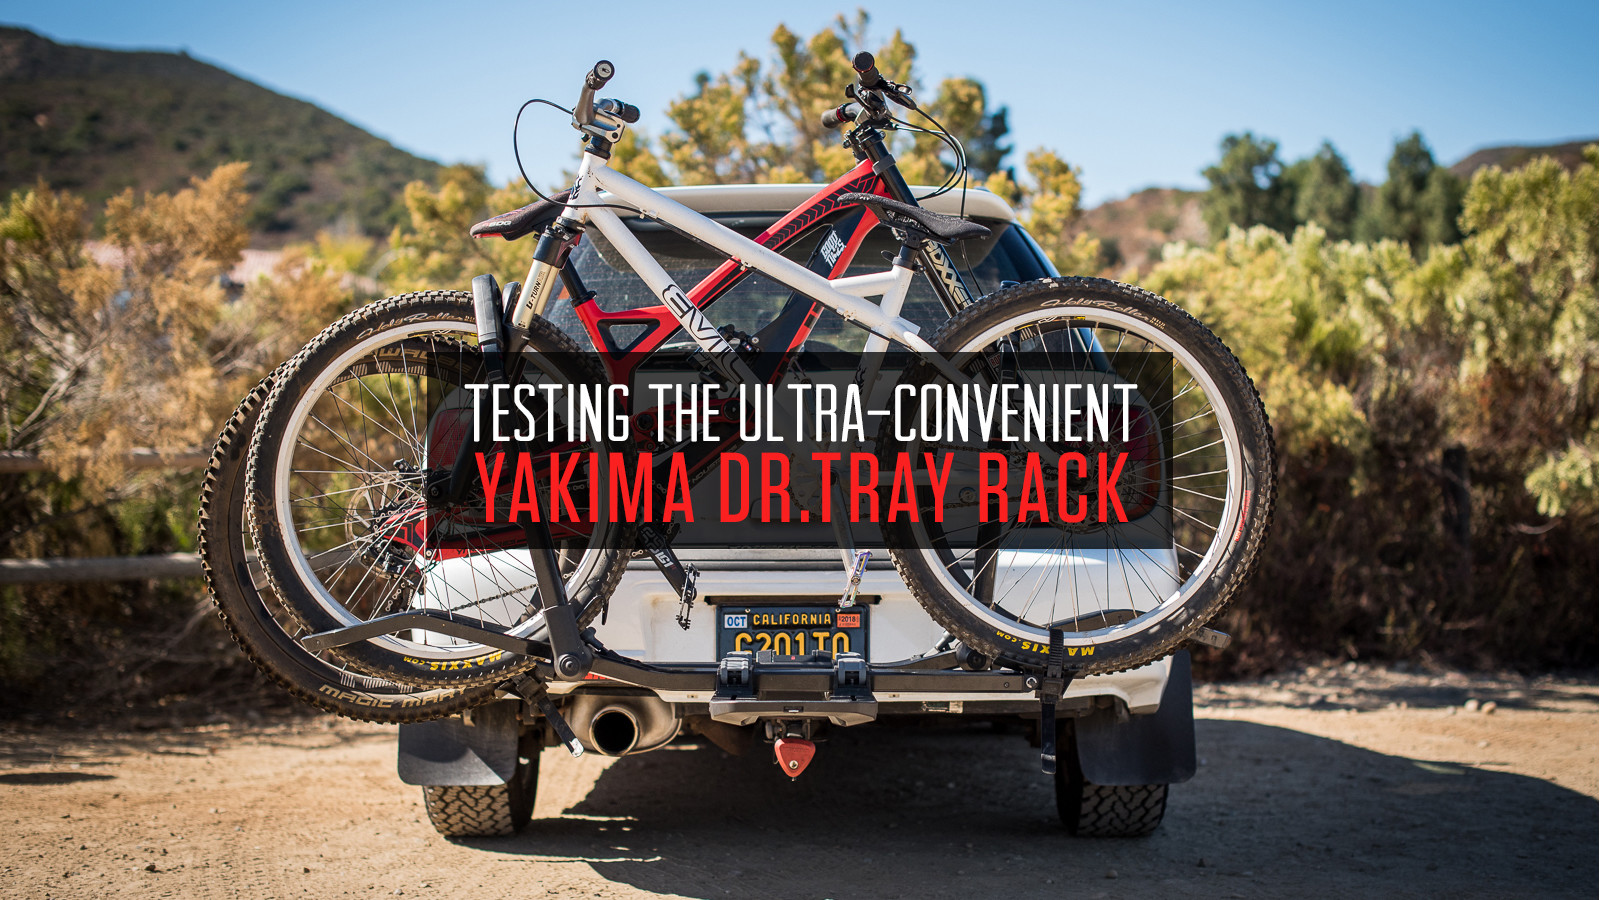 Testing the Ultra-Convenient Yakima Dr.Tray Hitch Rack